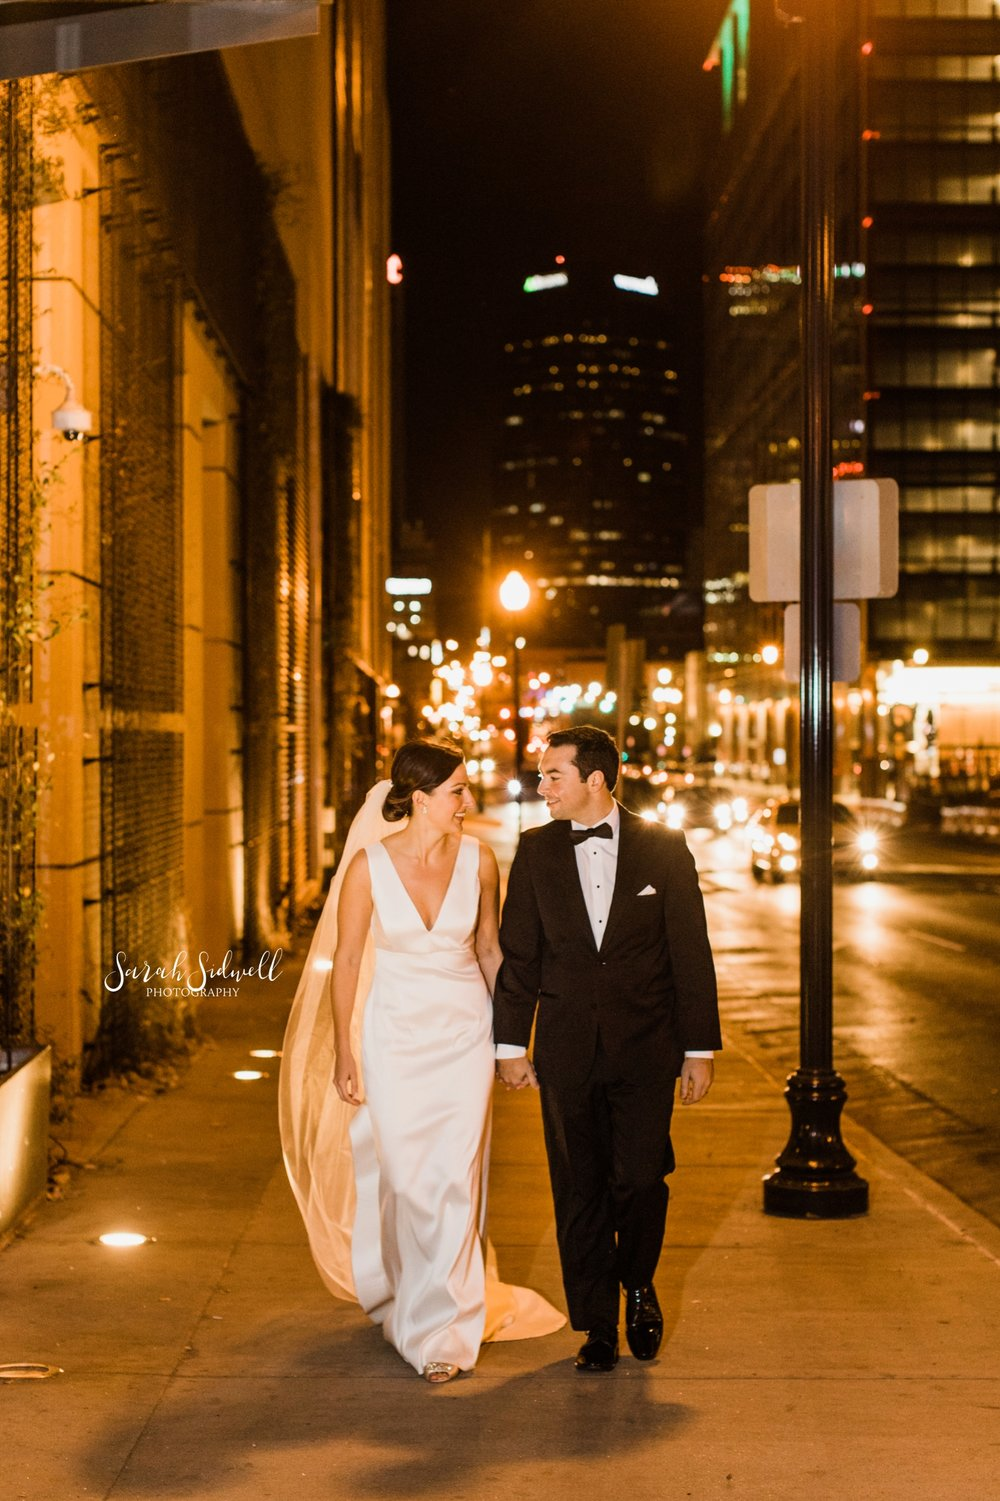 A bride and groom take a walk on a city street | Sarah Sidwell Photography | The Bell Tower